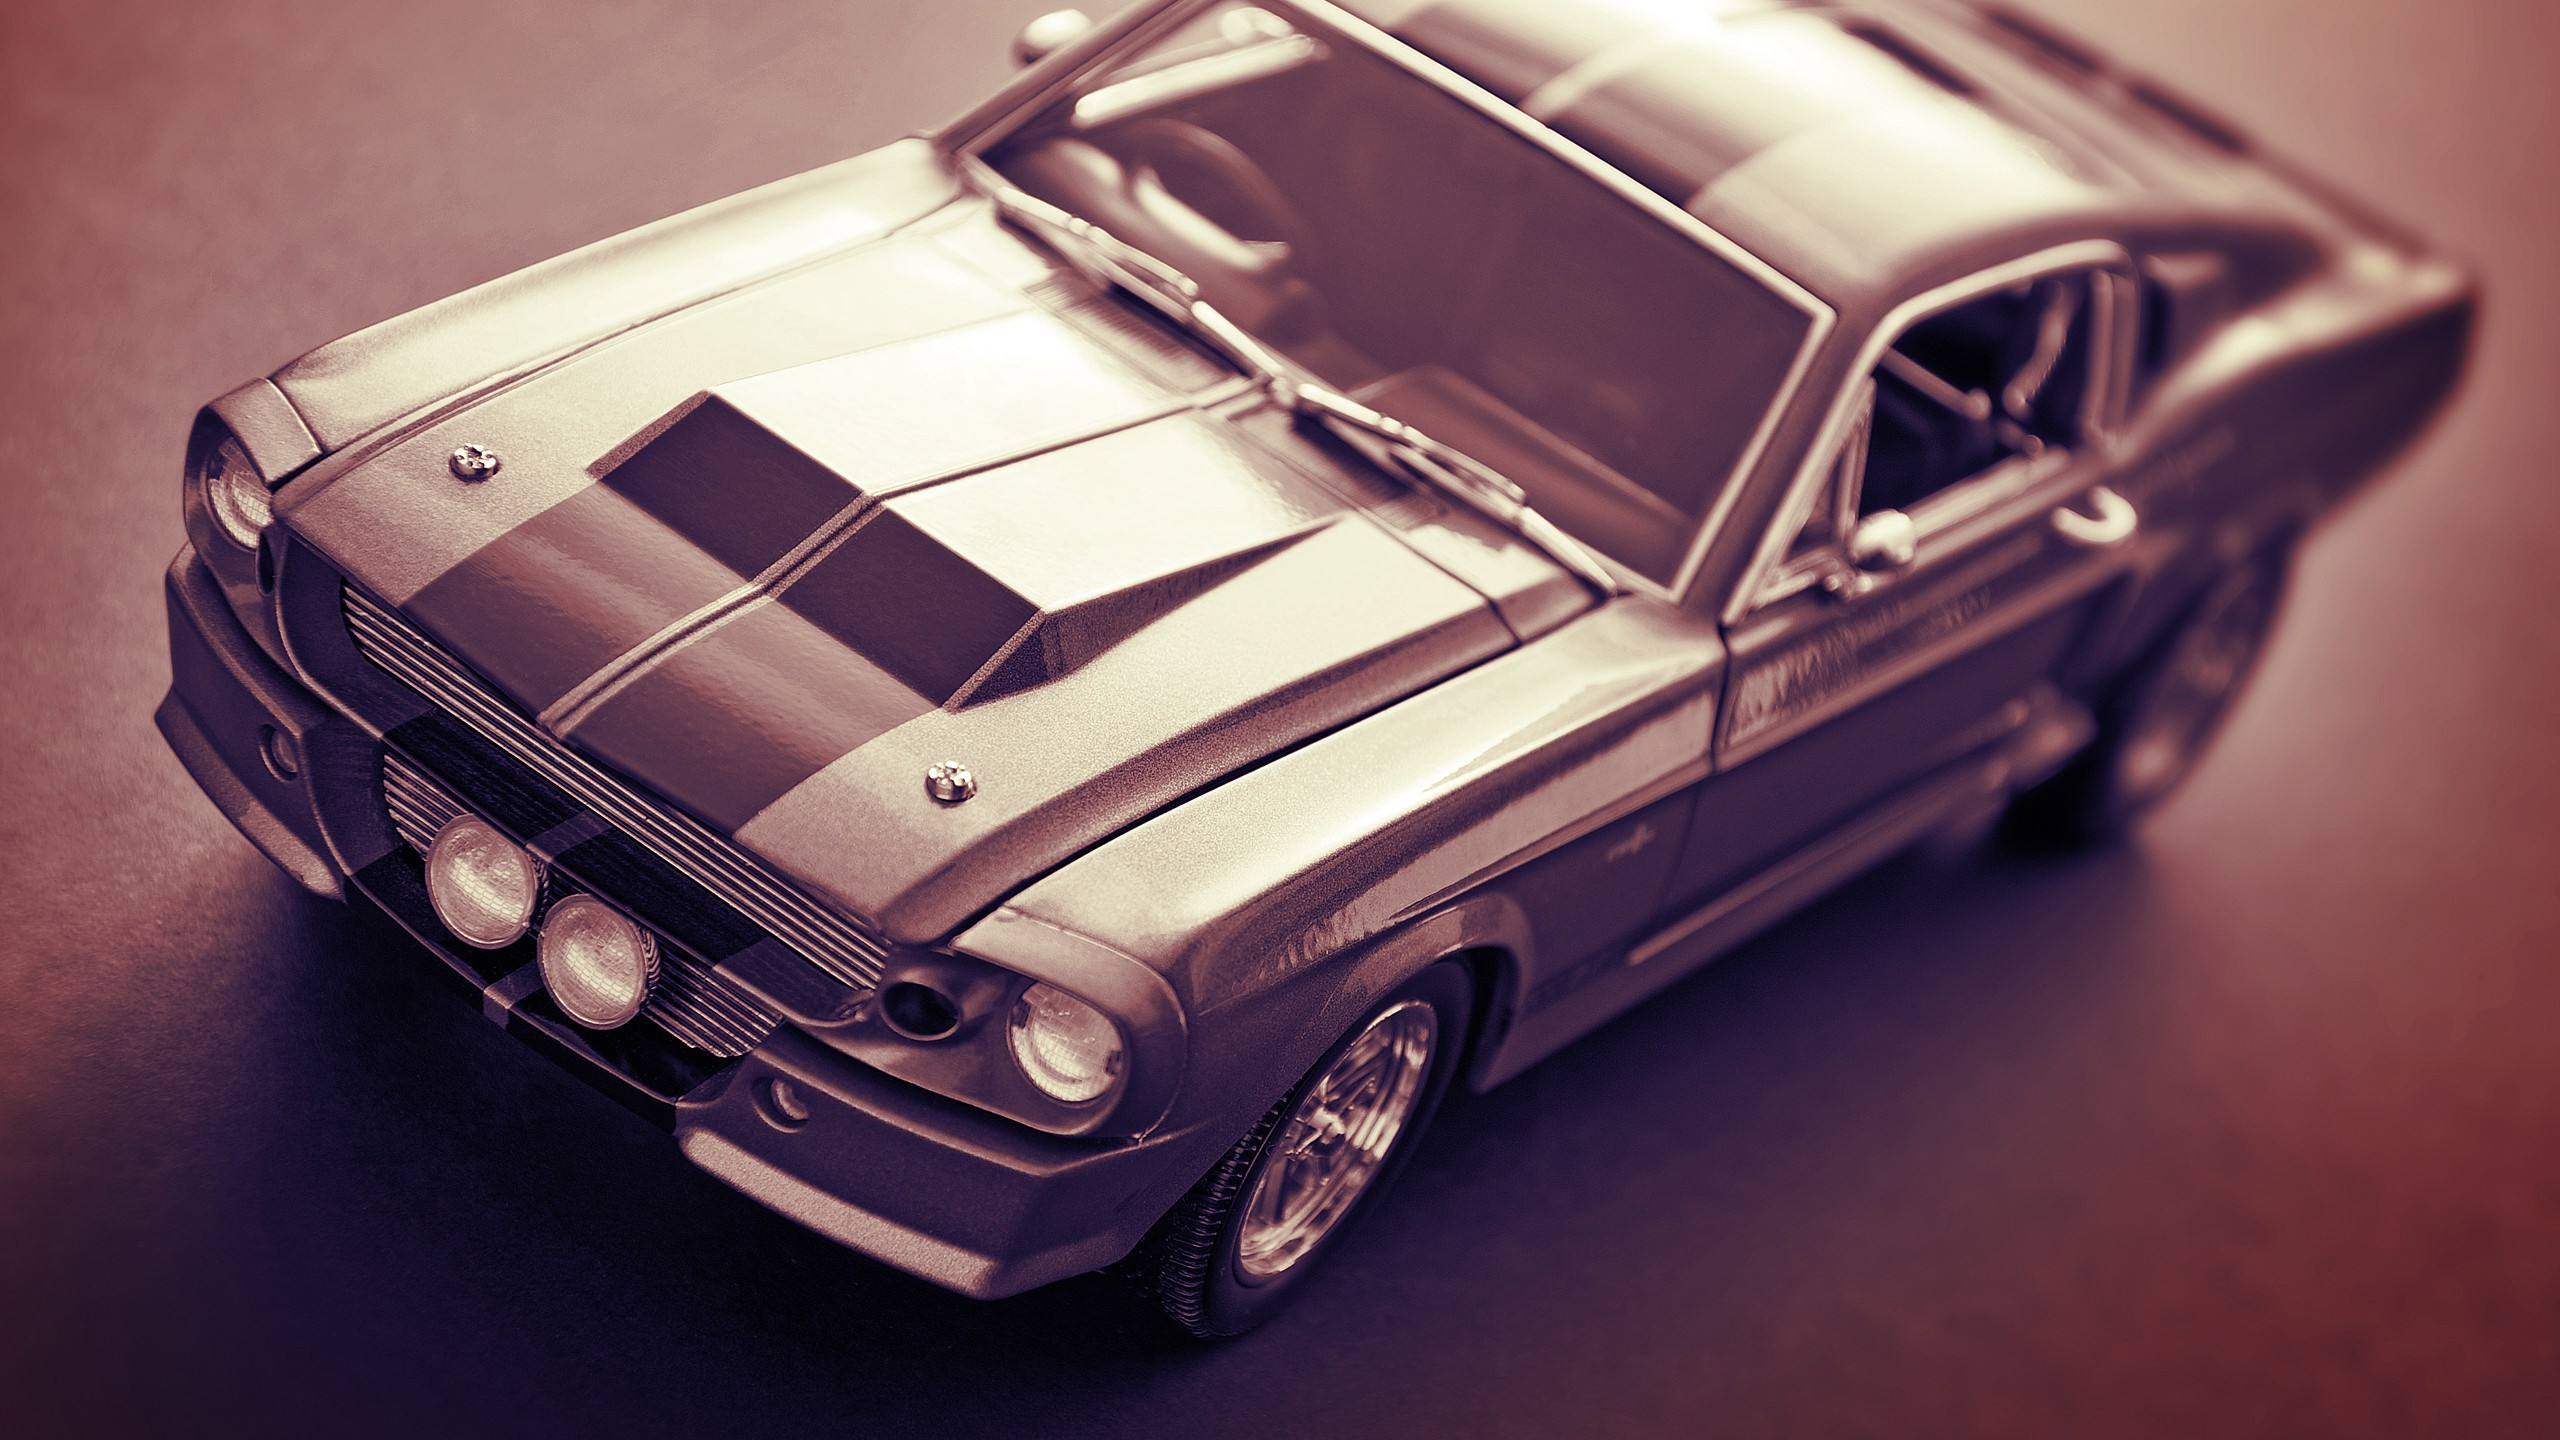 Ford mustang old cars vehicles wallpaper | AllWallpaper.in #1205 ...